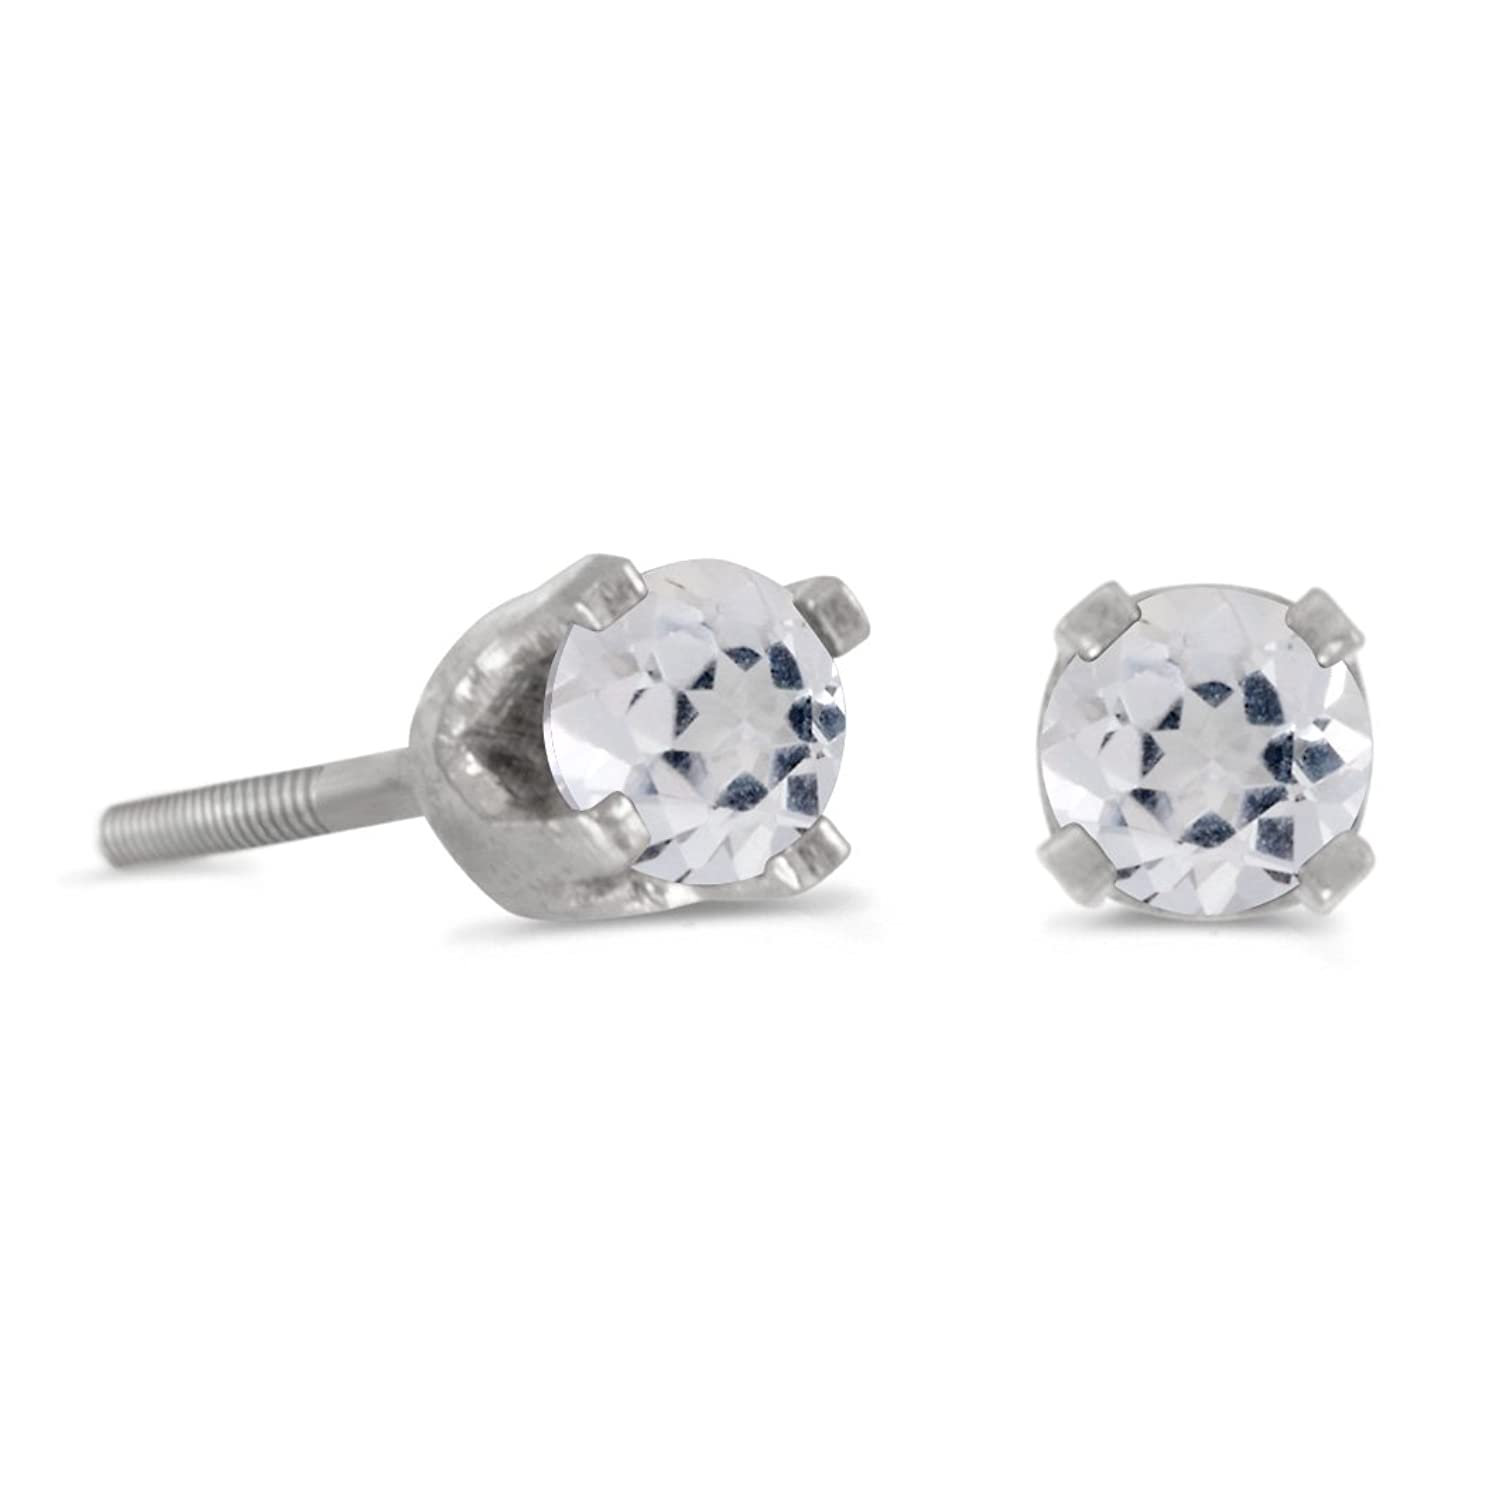 shared aura white gold blue earrings set jewelry round sterling ice diamond nl studs stud with wg topaz silver in